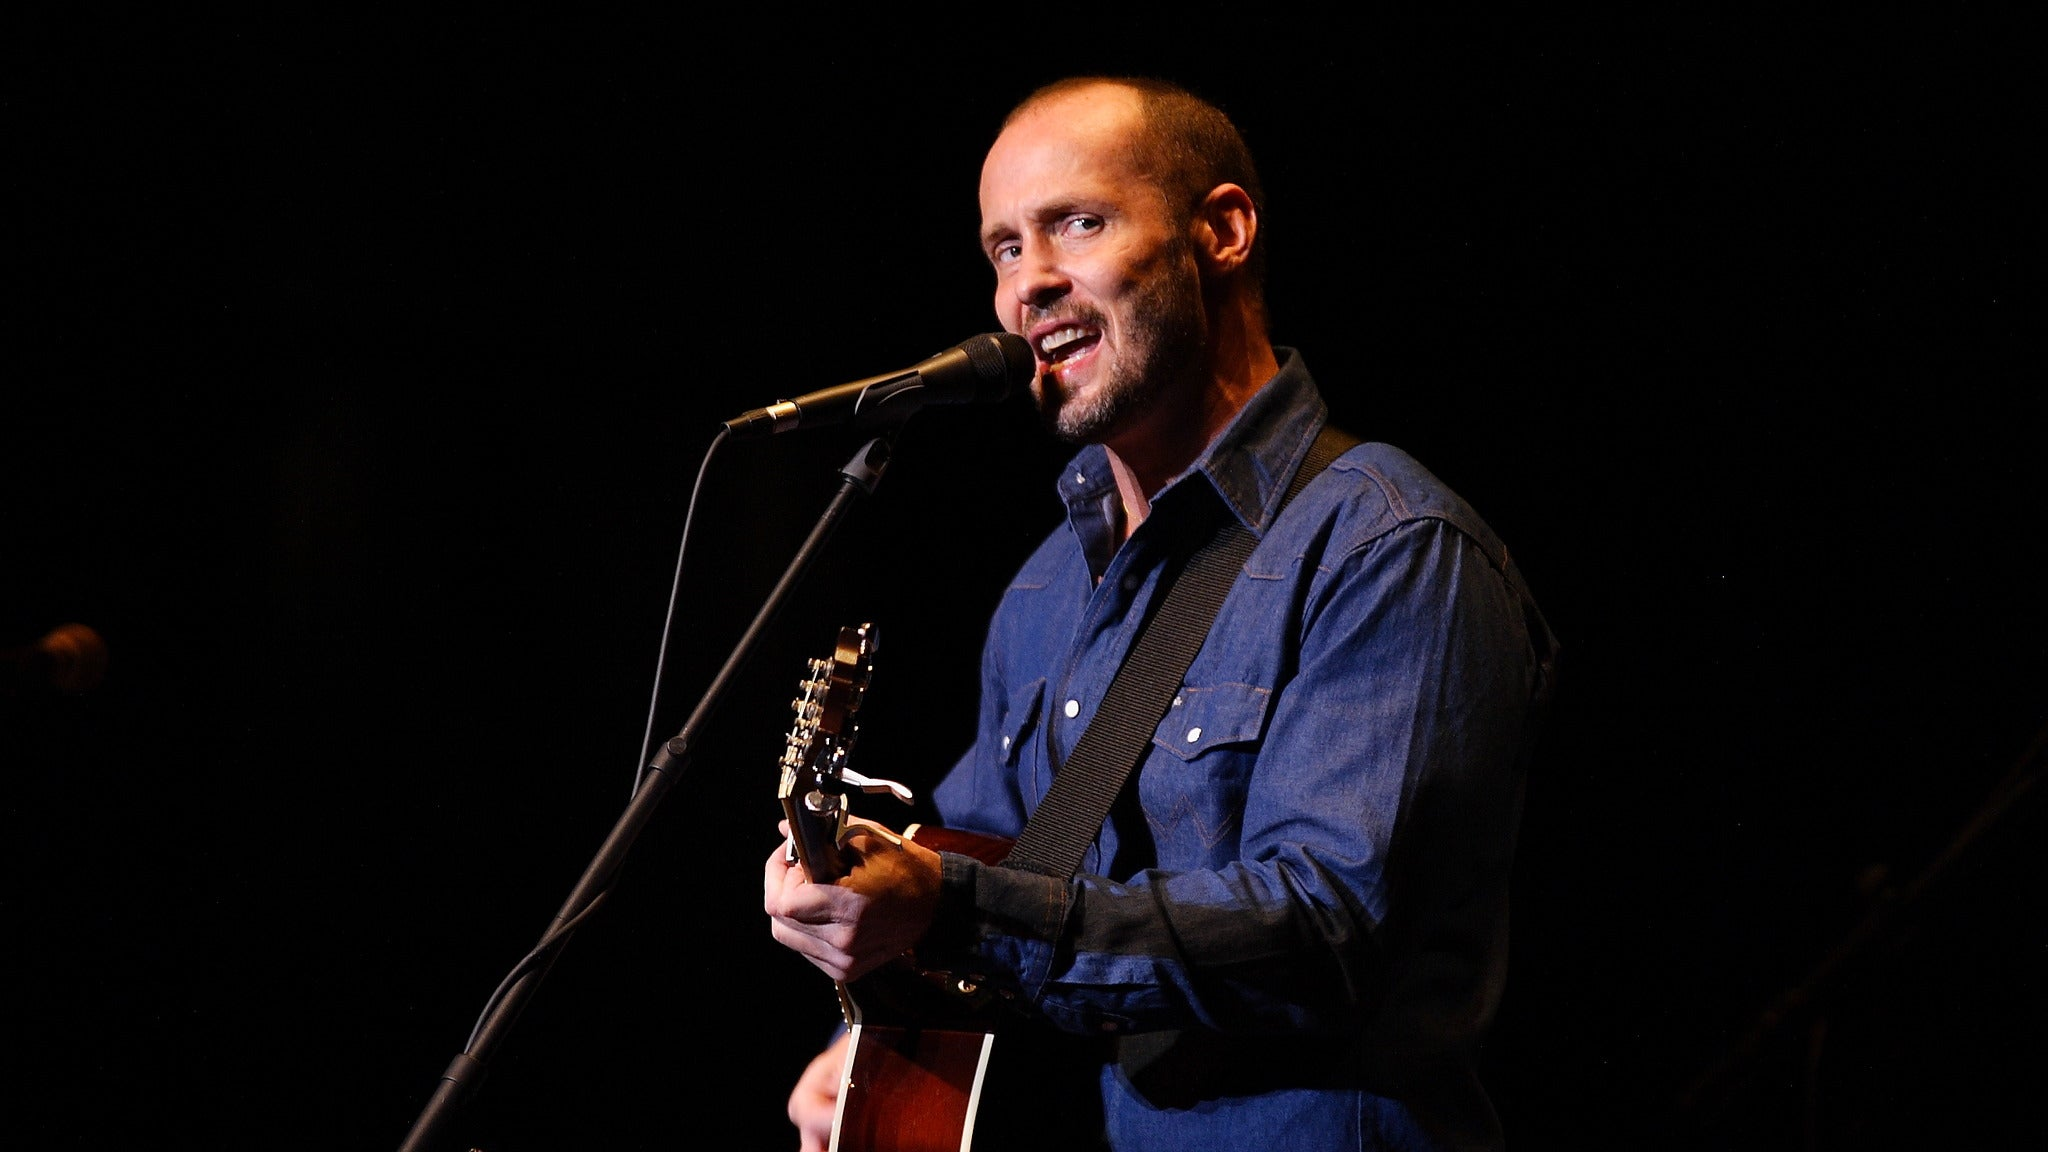 Paul Thorn at Vinyl Music Hall